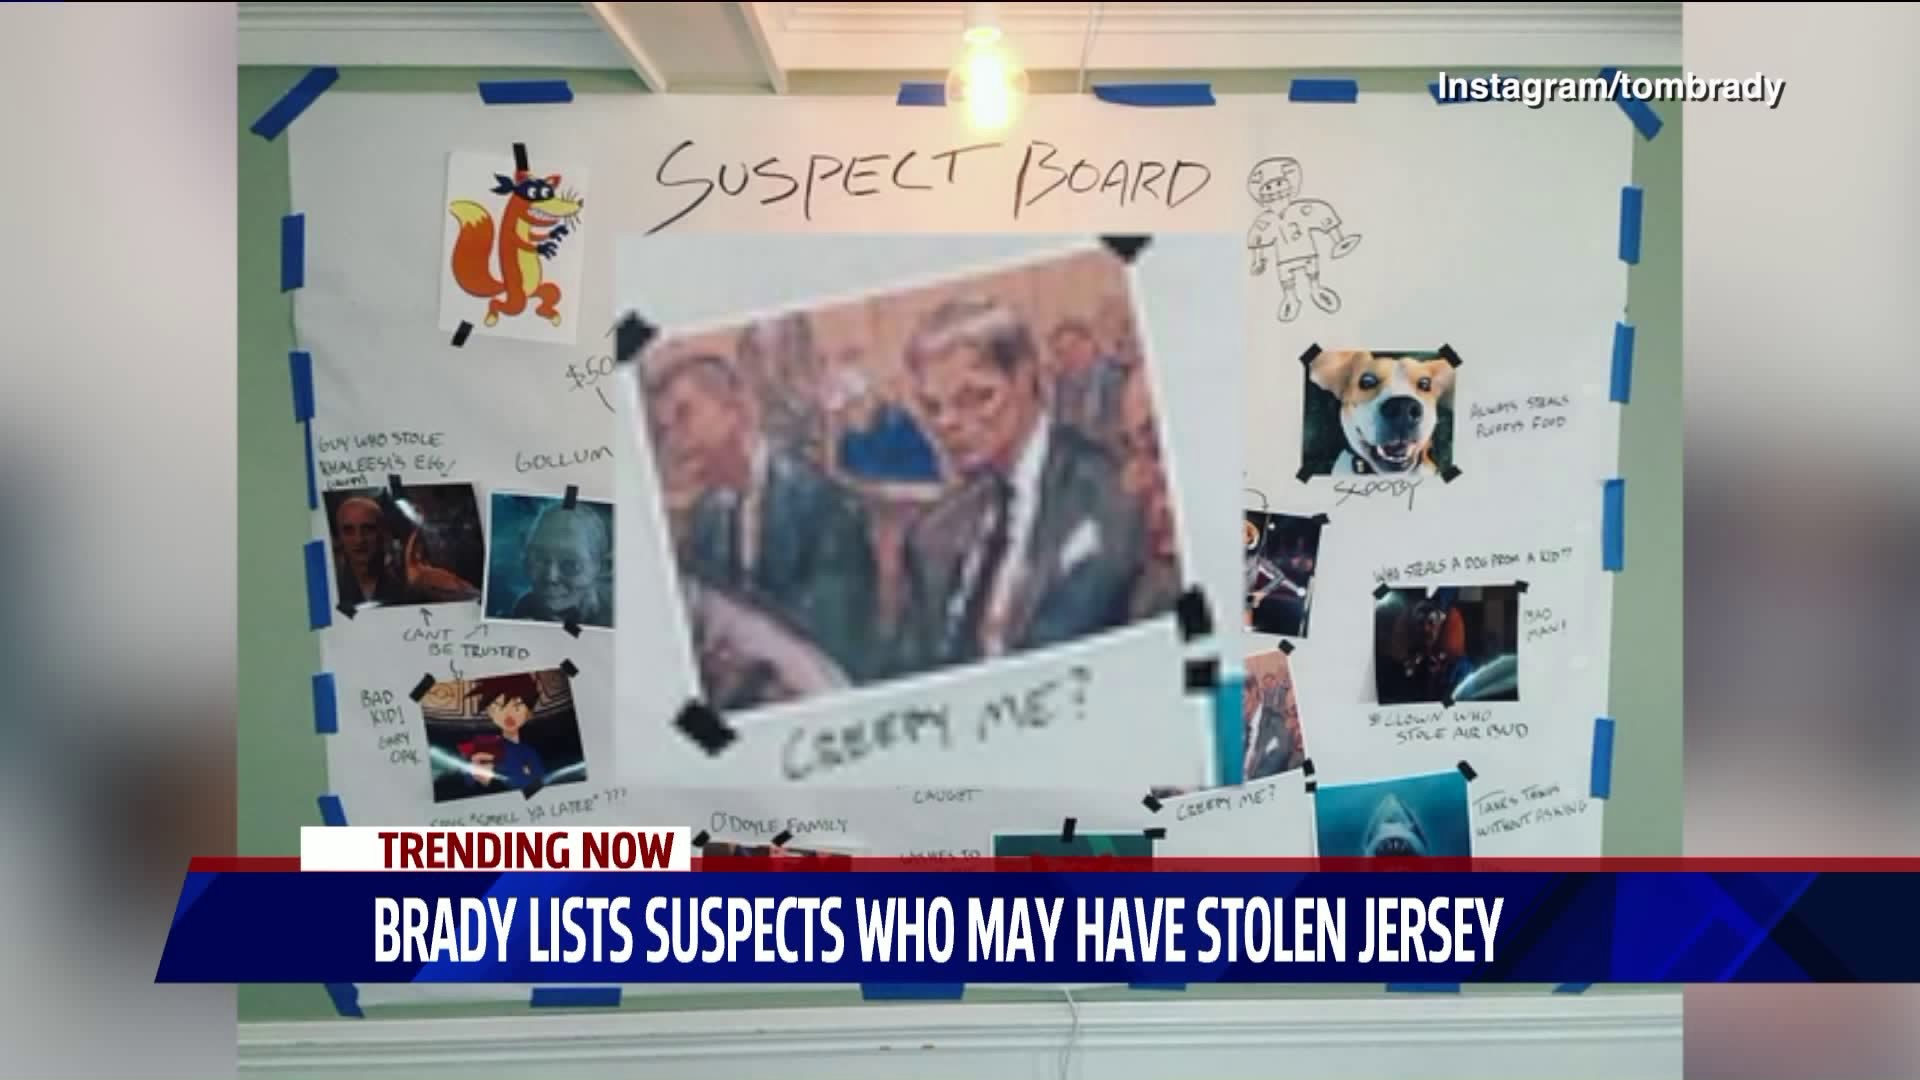 Brady posts suspect board for missing jersey